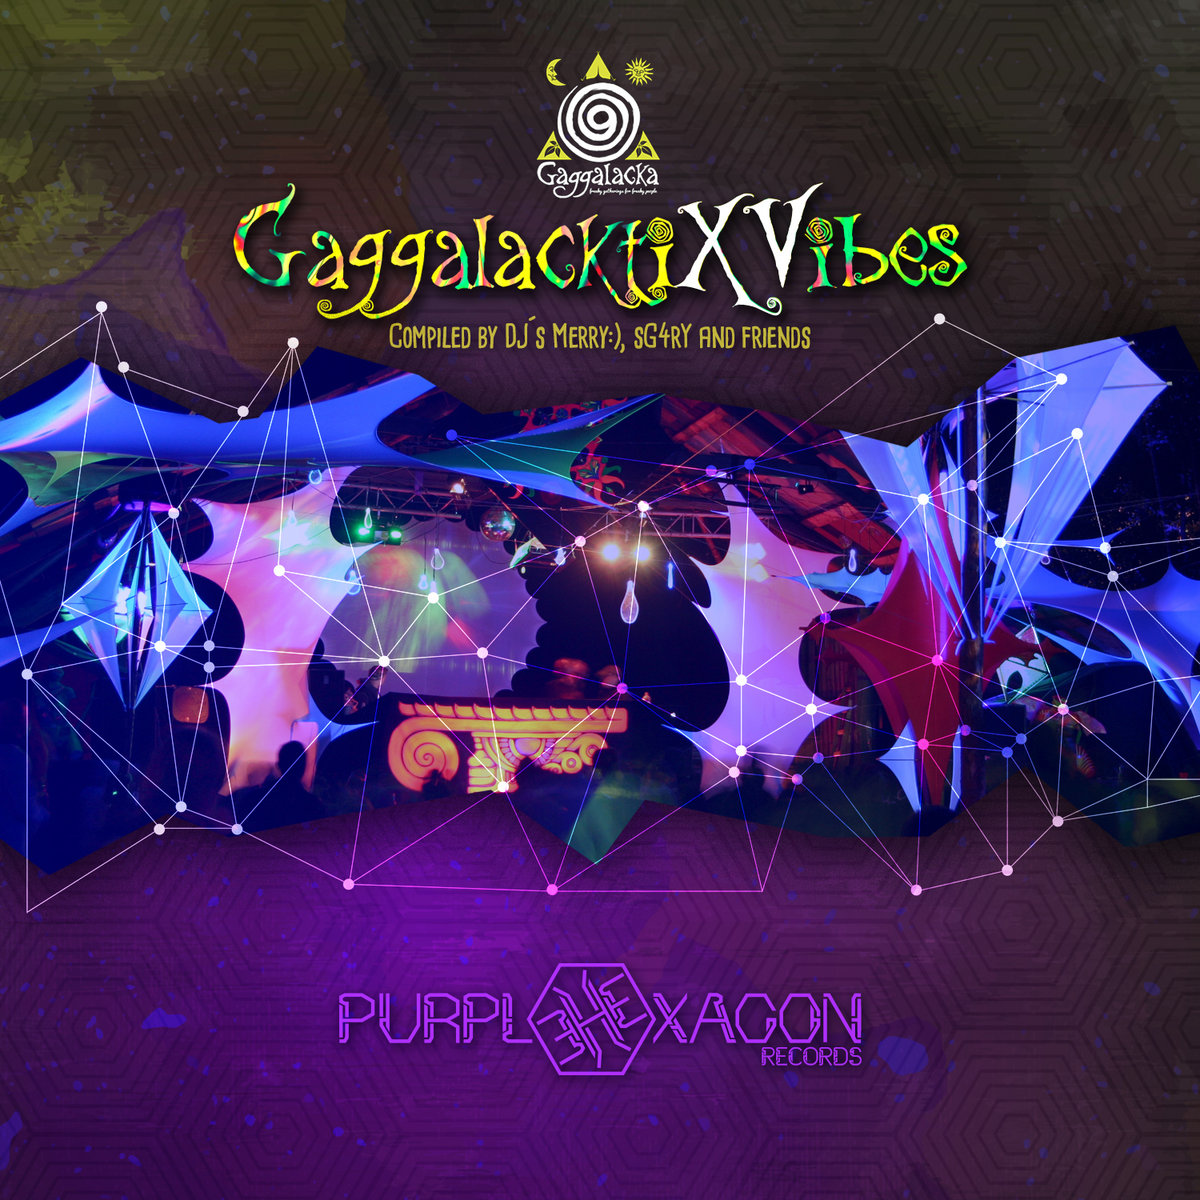 GaggalacktXVibes 2 ( Free Download ) | Purple Hexagon Records Official